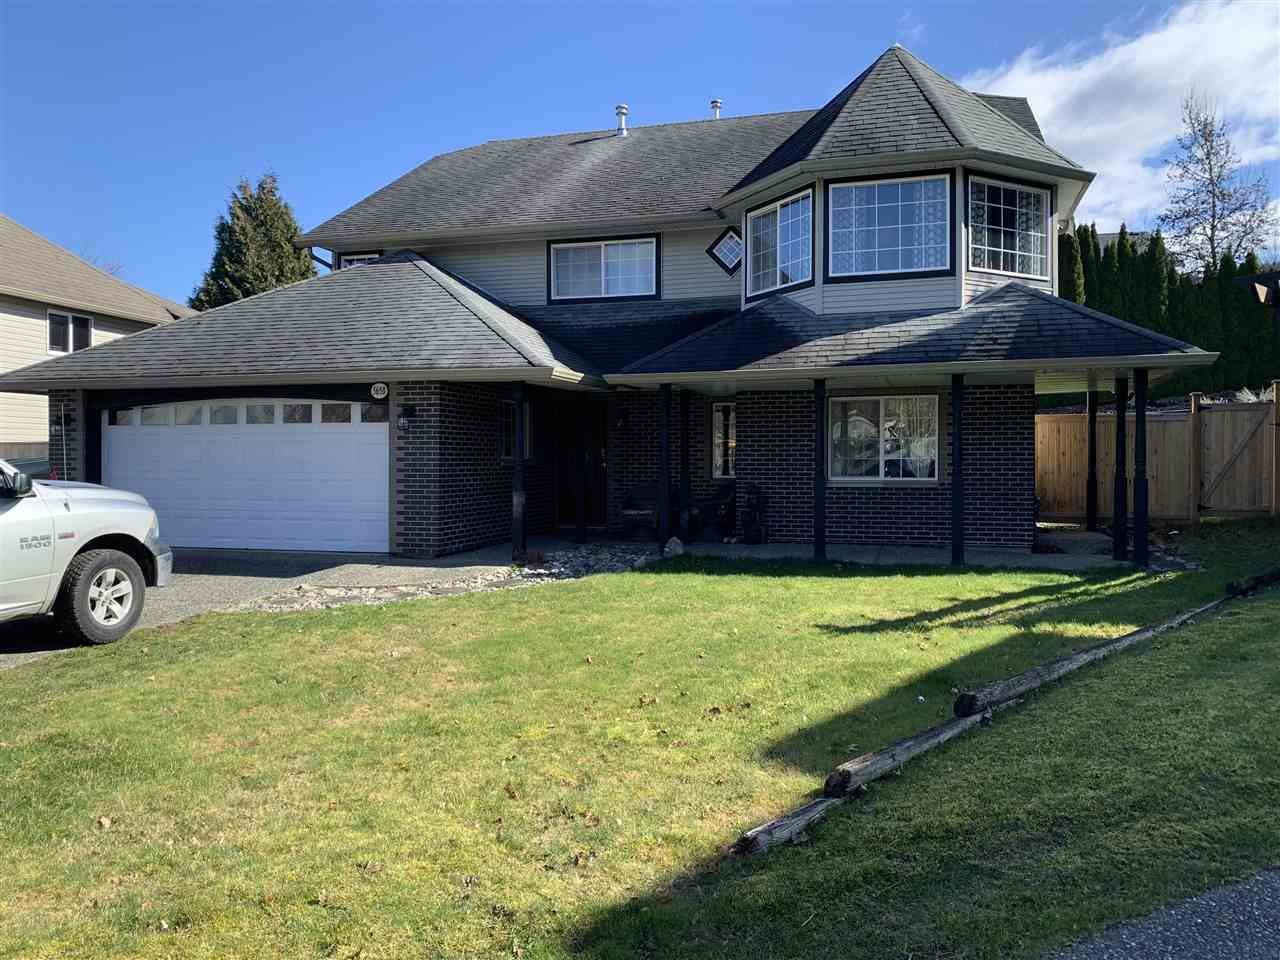 Main Photo: 5650 THORNHILL Street in Chilliwack: Promontory House for sale (Sardis)  : MLS®# R2551380